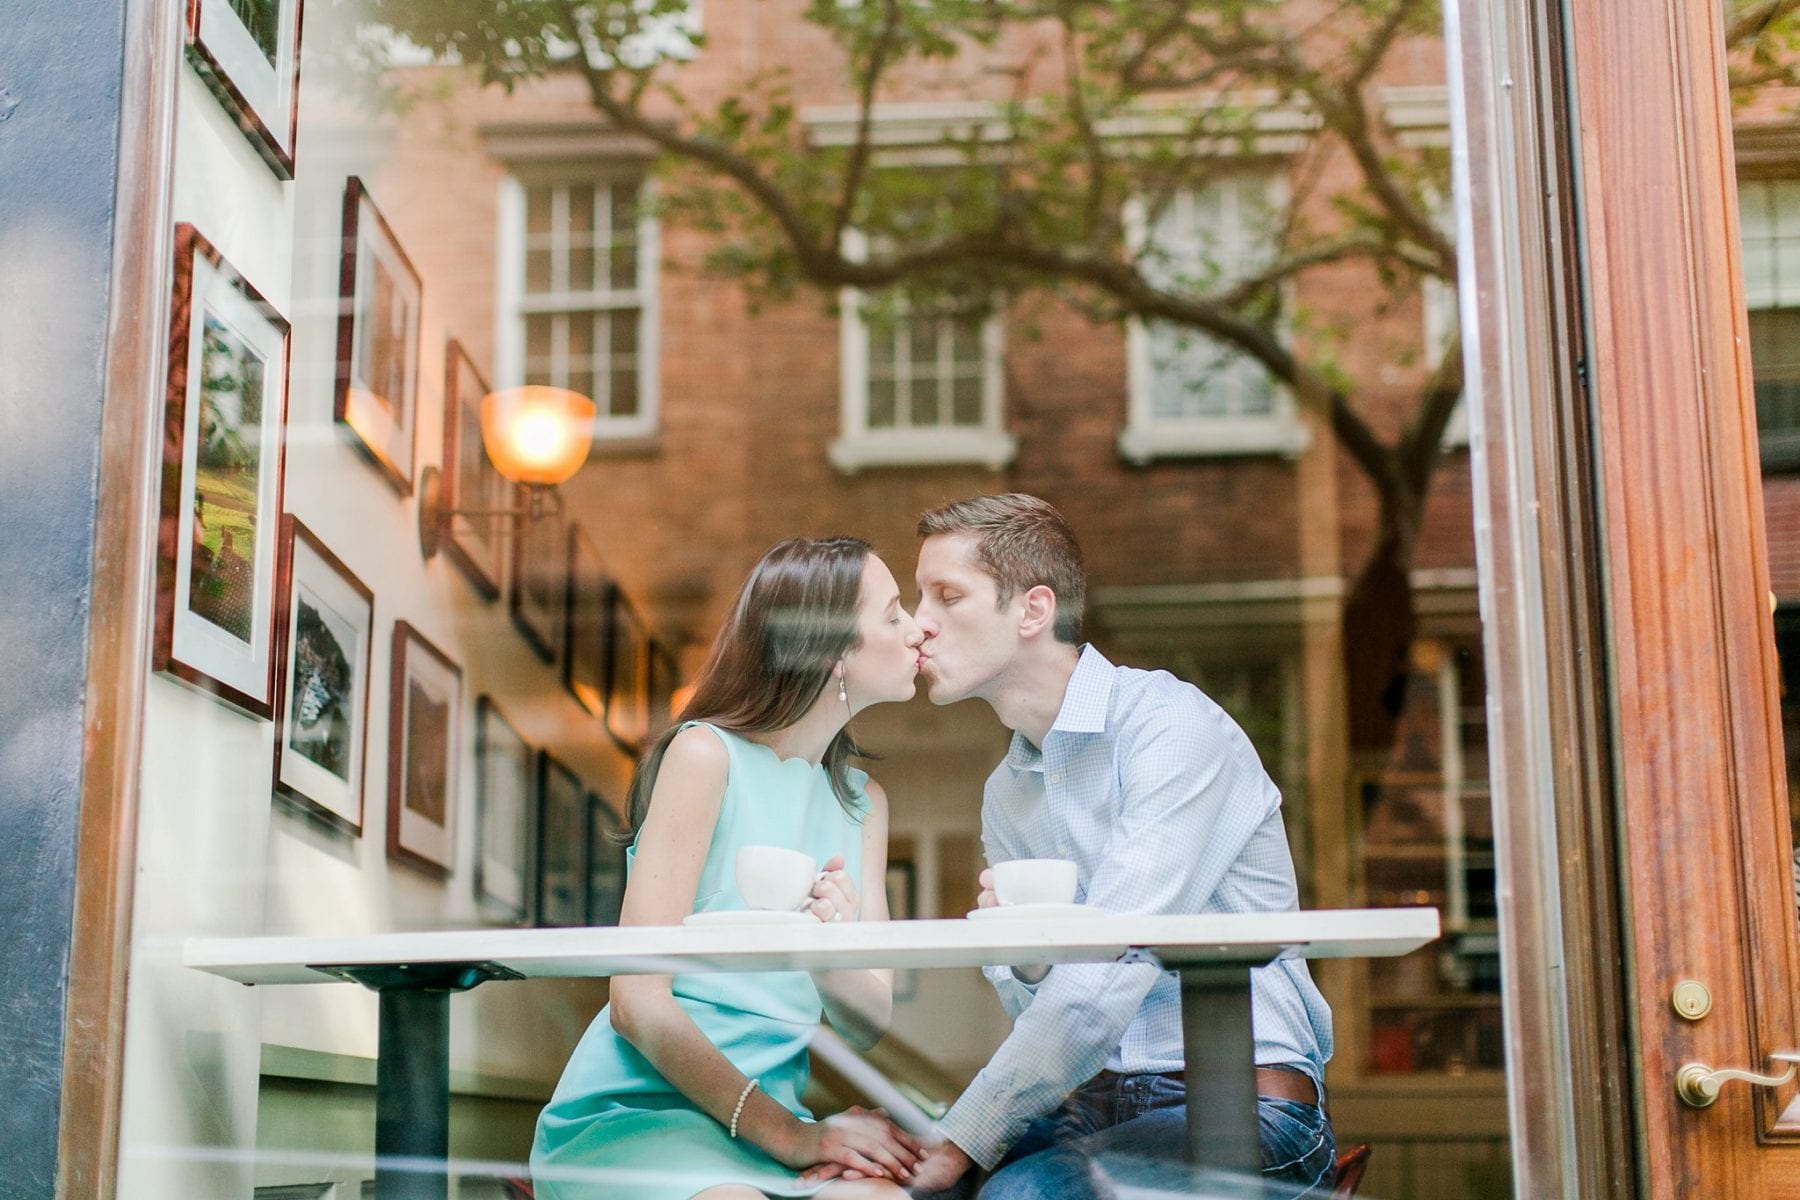 West Village Central Park Engagement Photos NYC Wedding Photographer Megan Kelsey Photography-142.jpg